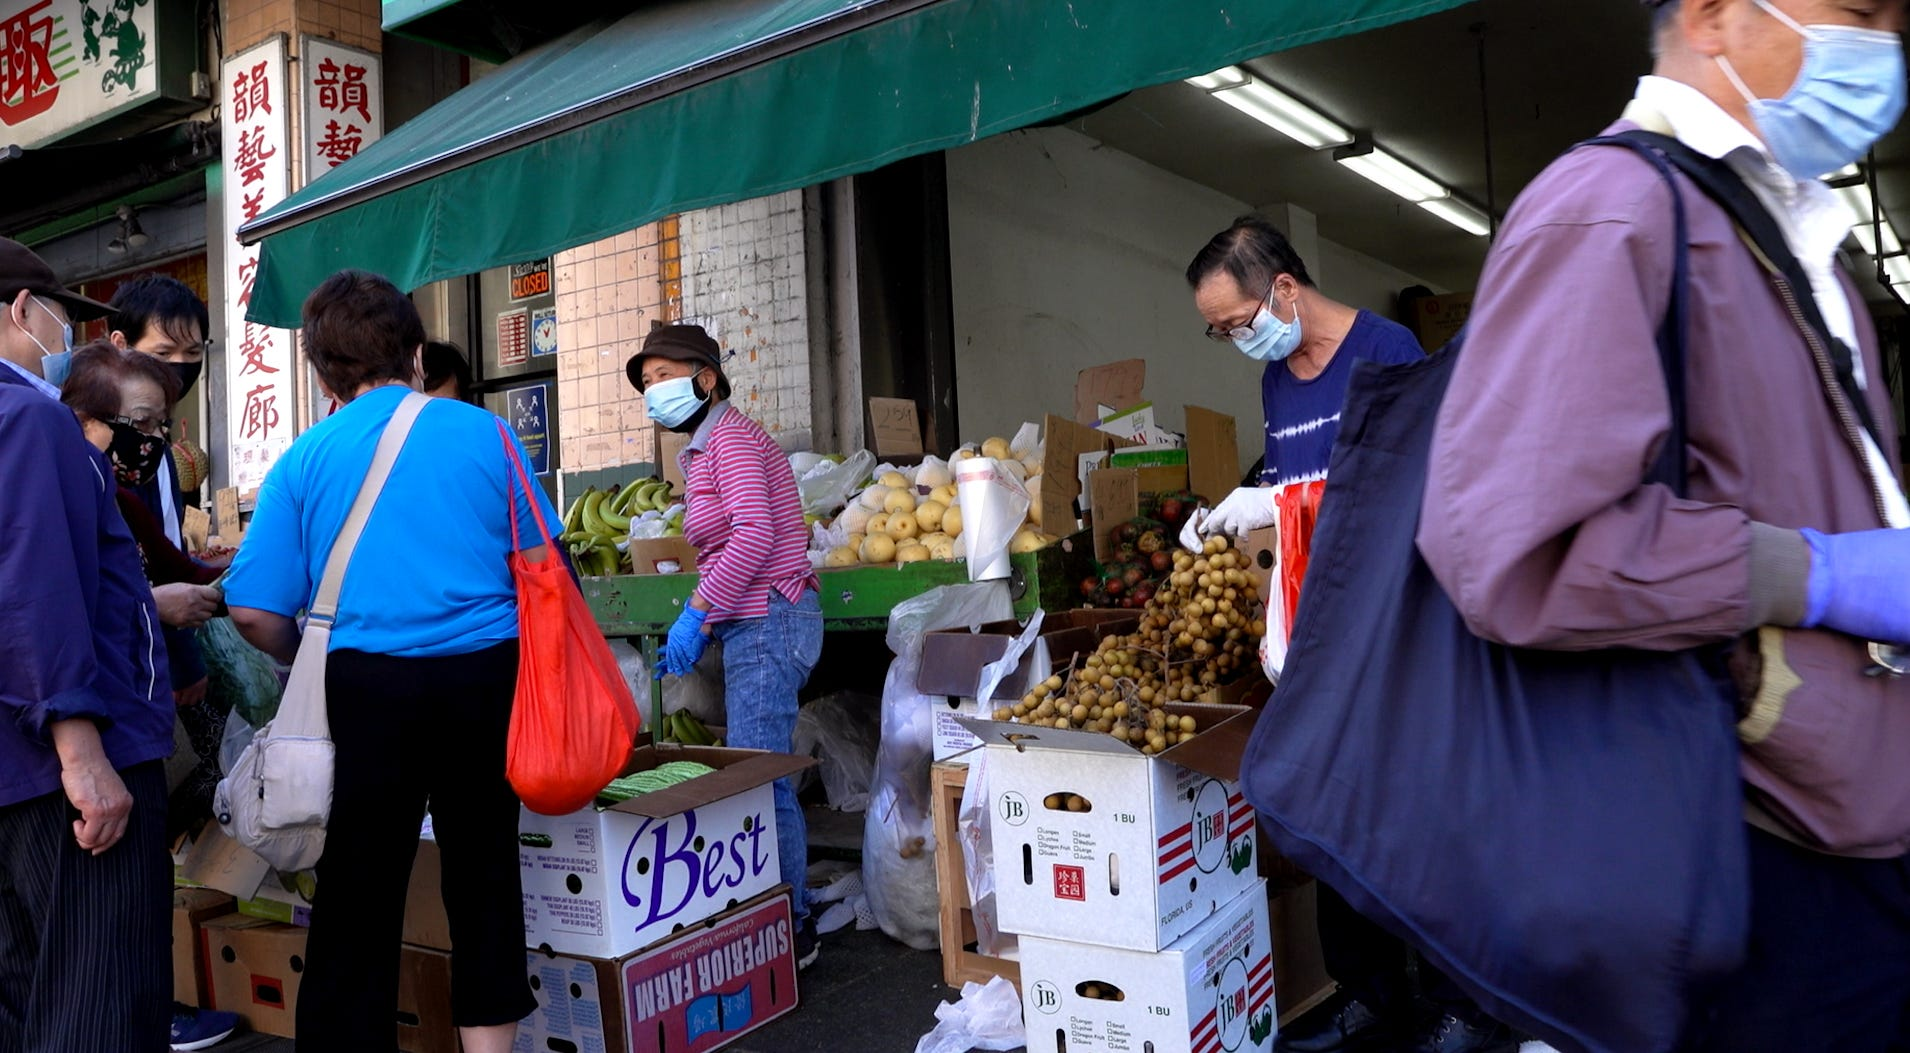 People shop at the produce market in Chinatown in downtown San Francisco on Sept. 29, 2020. Last fall, Asians accounted for nearly 40% ofCOVID-19 deaths in the city.